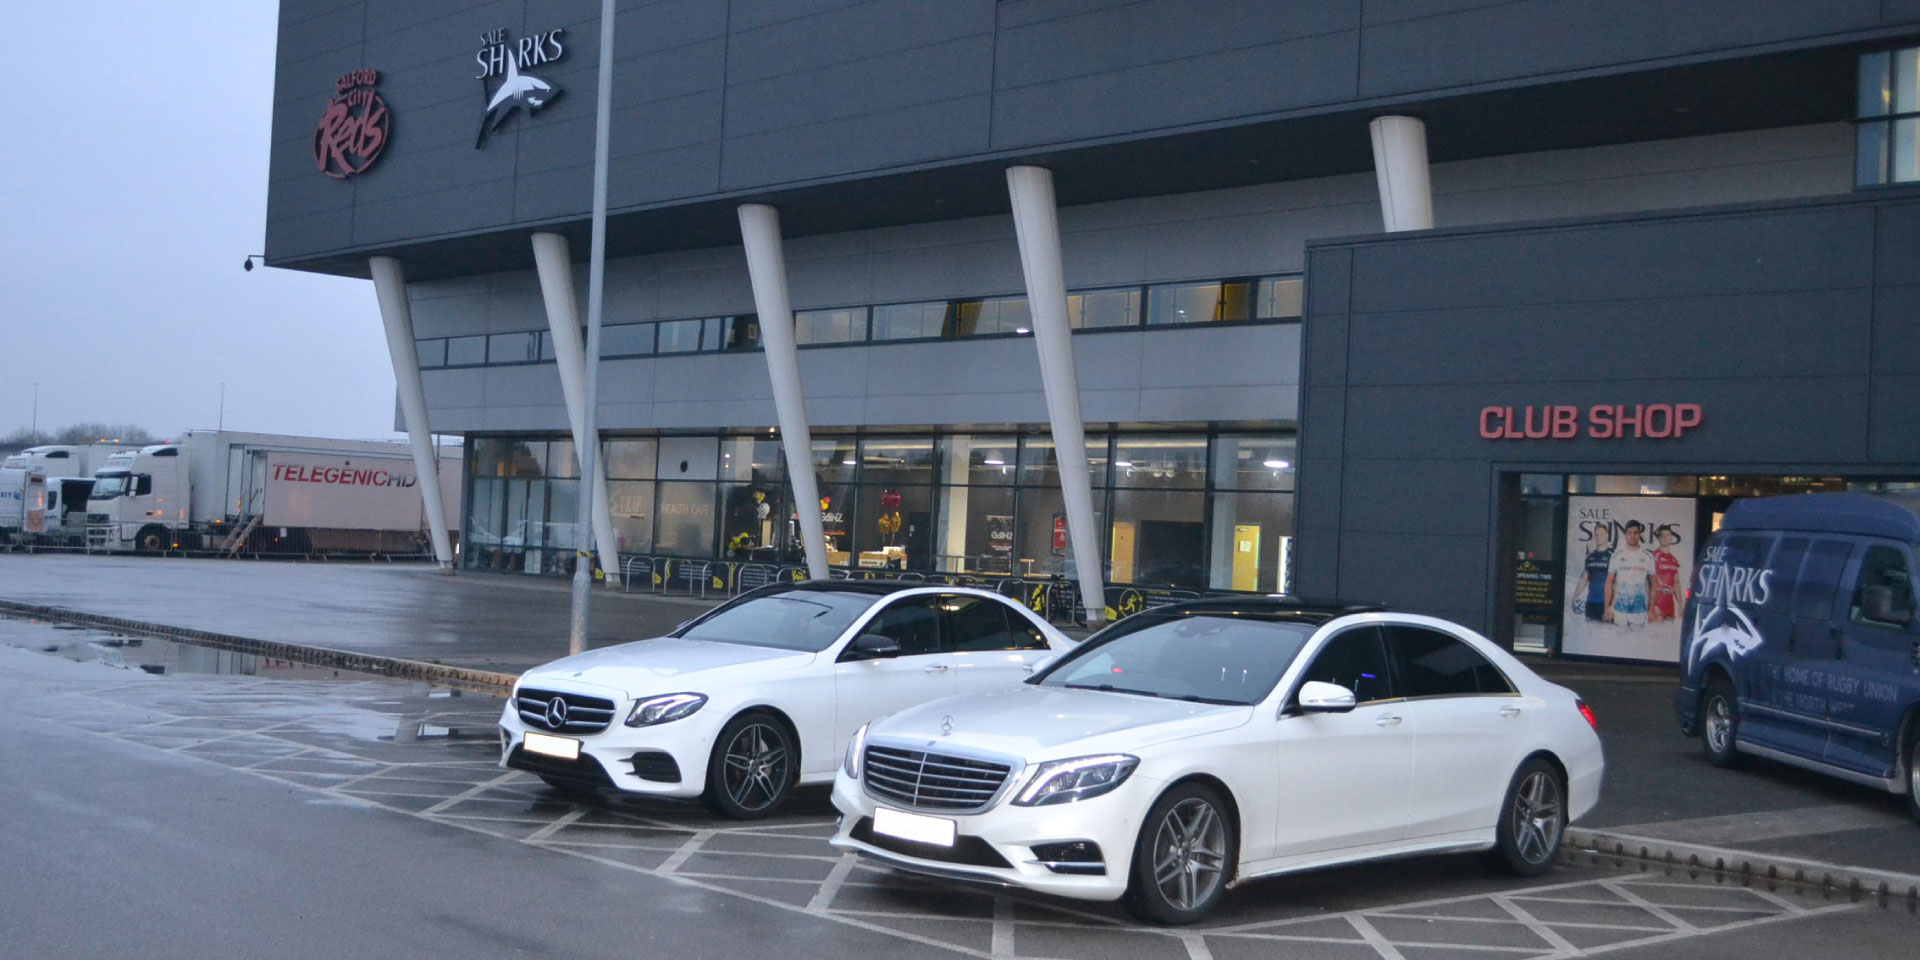 Sporting Event<br>Chauffeur Services